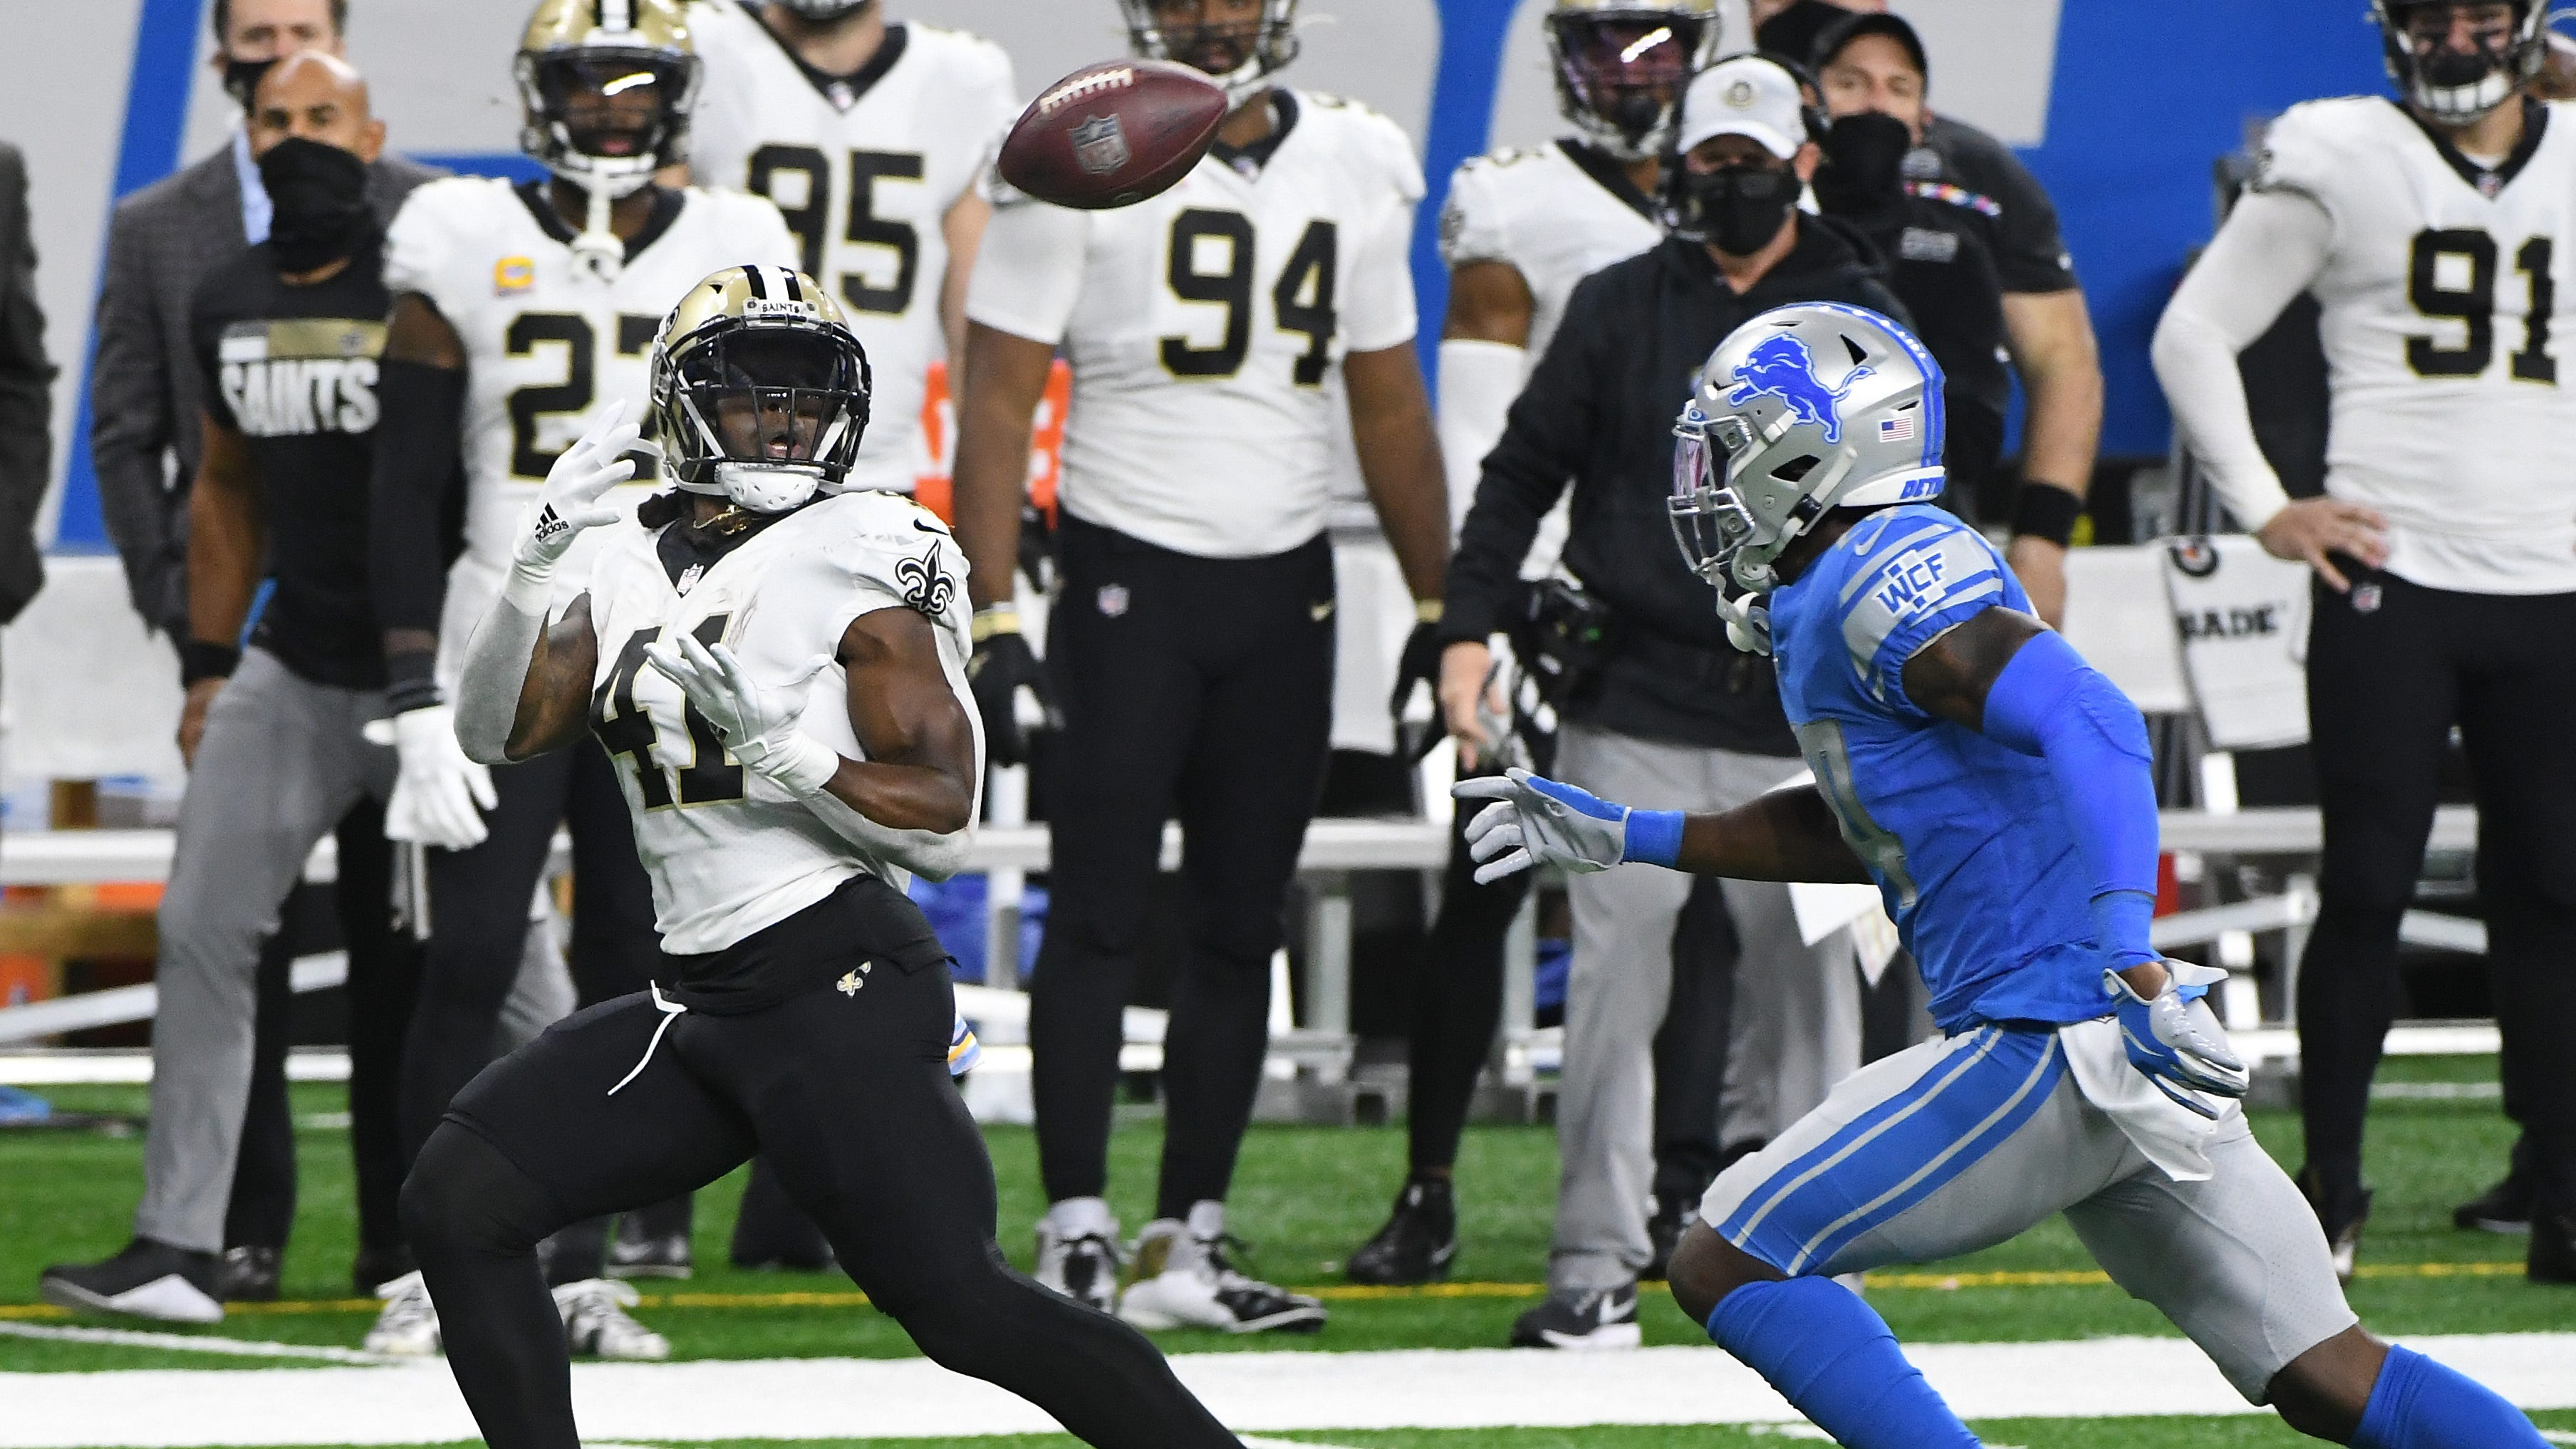 Saints running back Alvin Kamara readies for a long reception in front of Lions safety Will Harris in the second quarter Sunday at Ford Field.